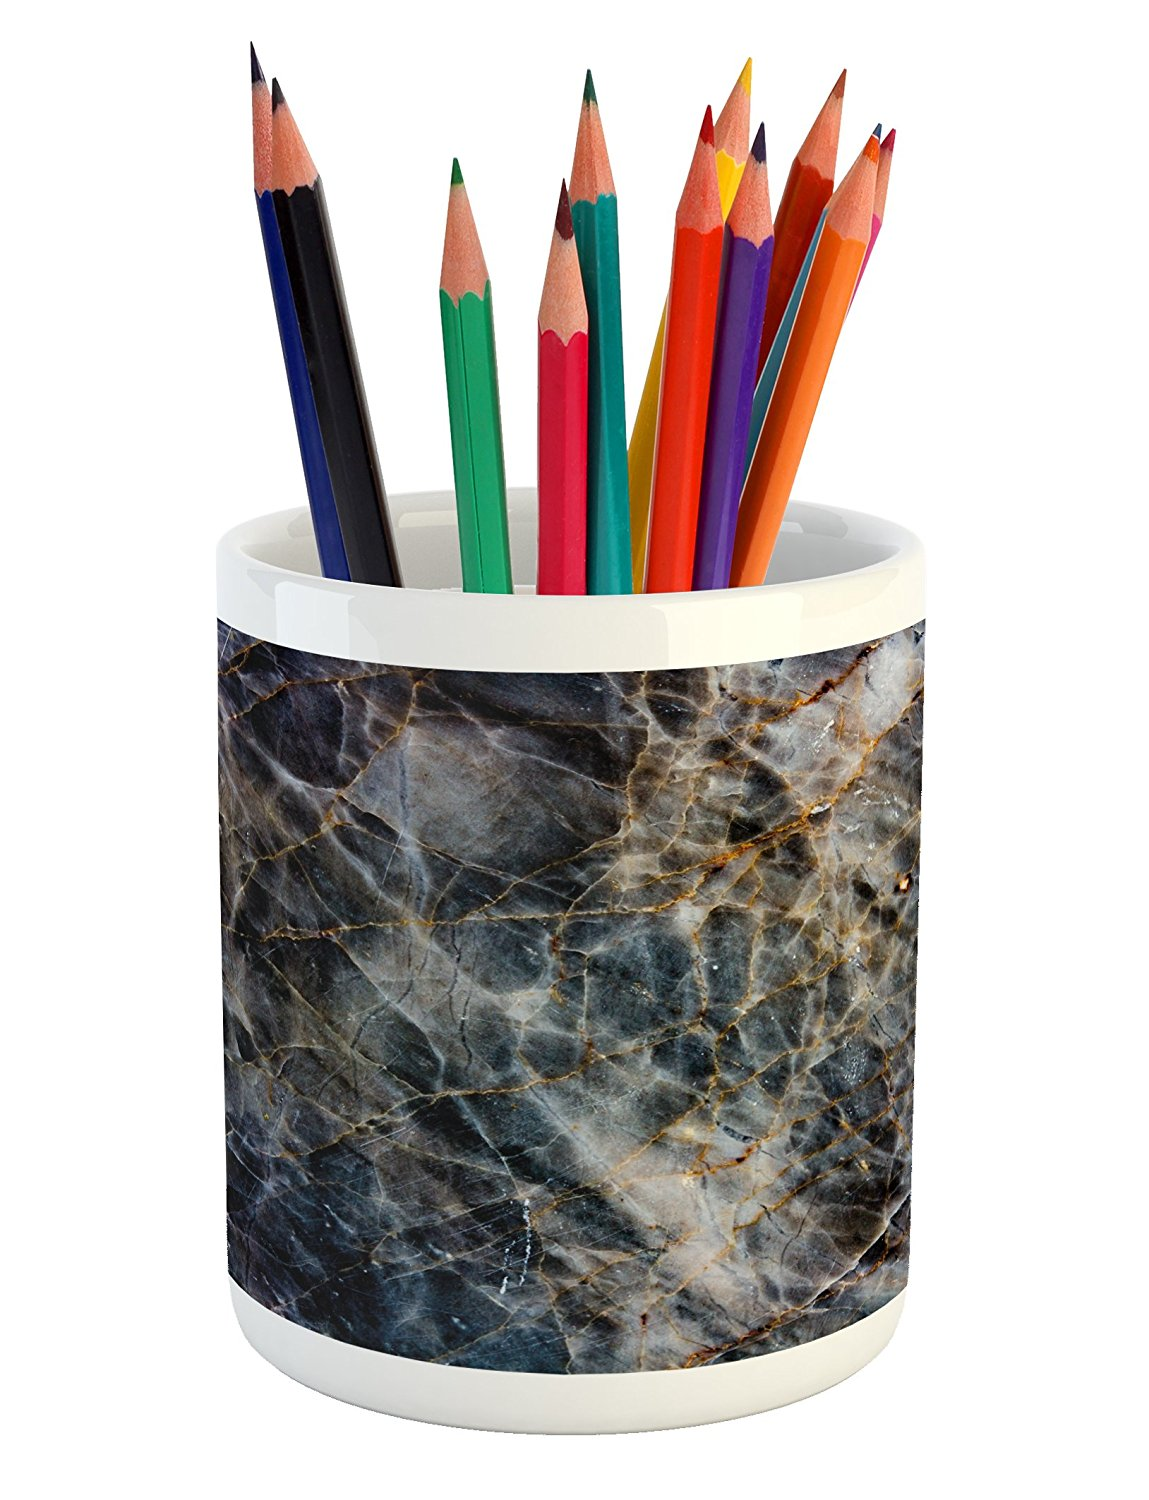 Marble Pencil Pen Holder by Lunarable, Gold Grunge Texture with Scratch Effects Distress Stylish Motif, Printed Ceramic Pencil Pen Holder for Desk Office Accessory, Charcoal Grey Marigold Dust